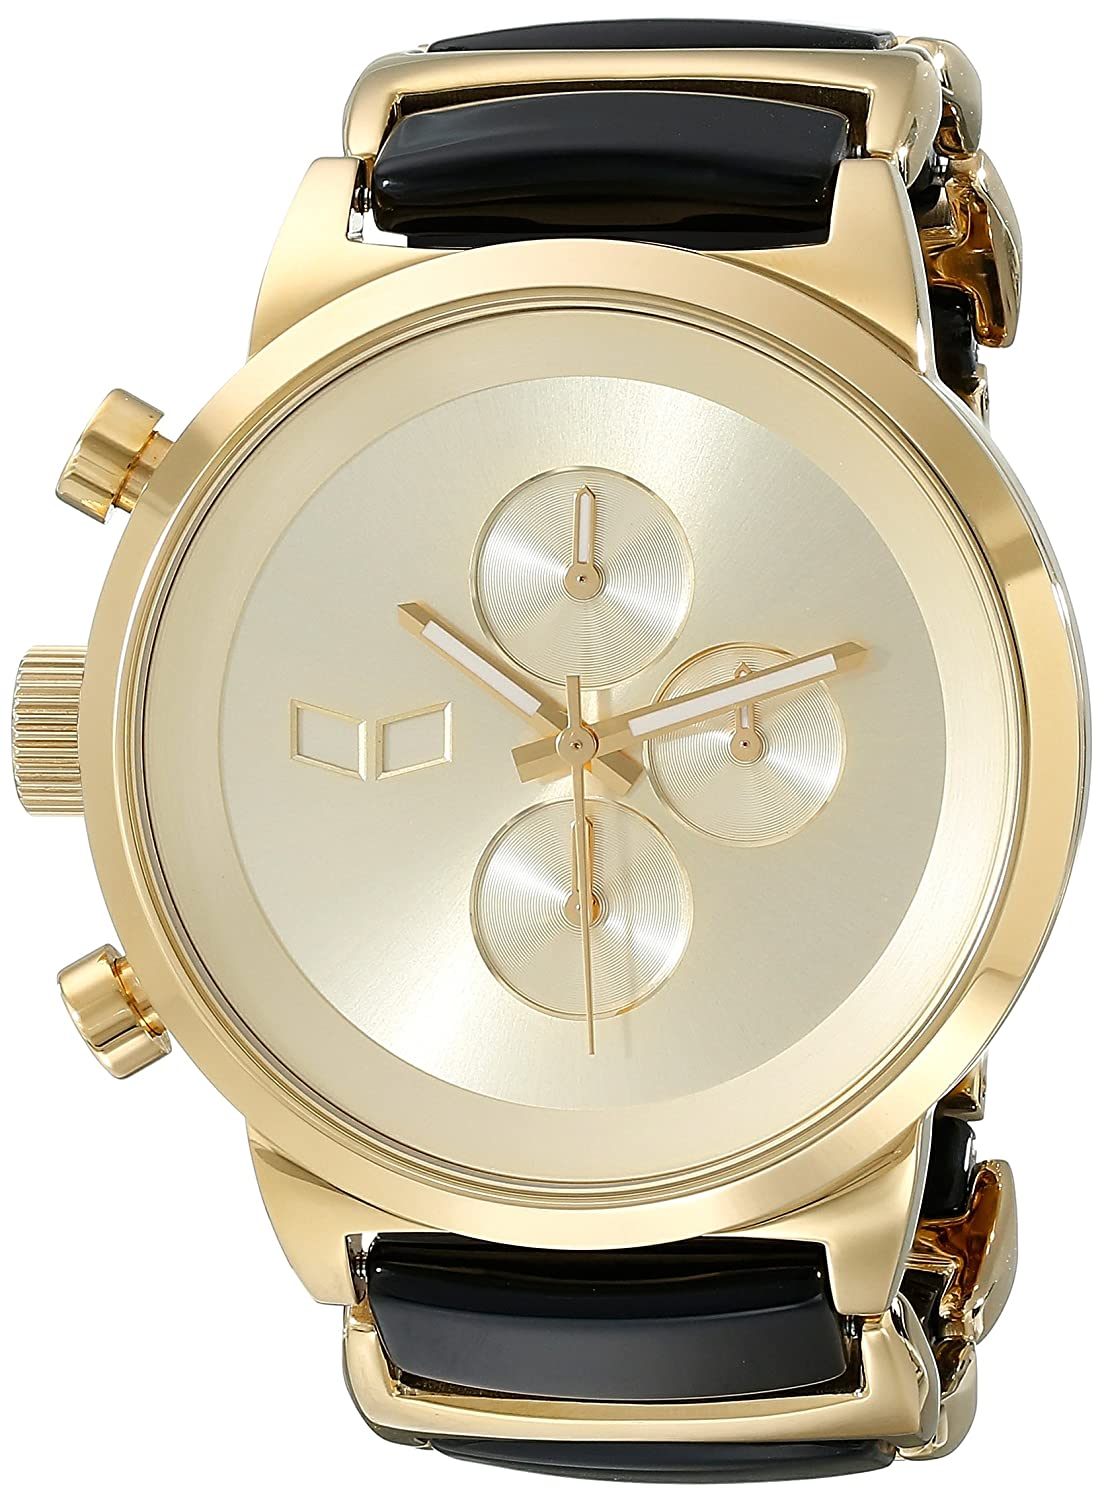 Amazon.com: Vestal Unisex METCA08 Metronome Analog Display Quartz Gold Watch: Watches